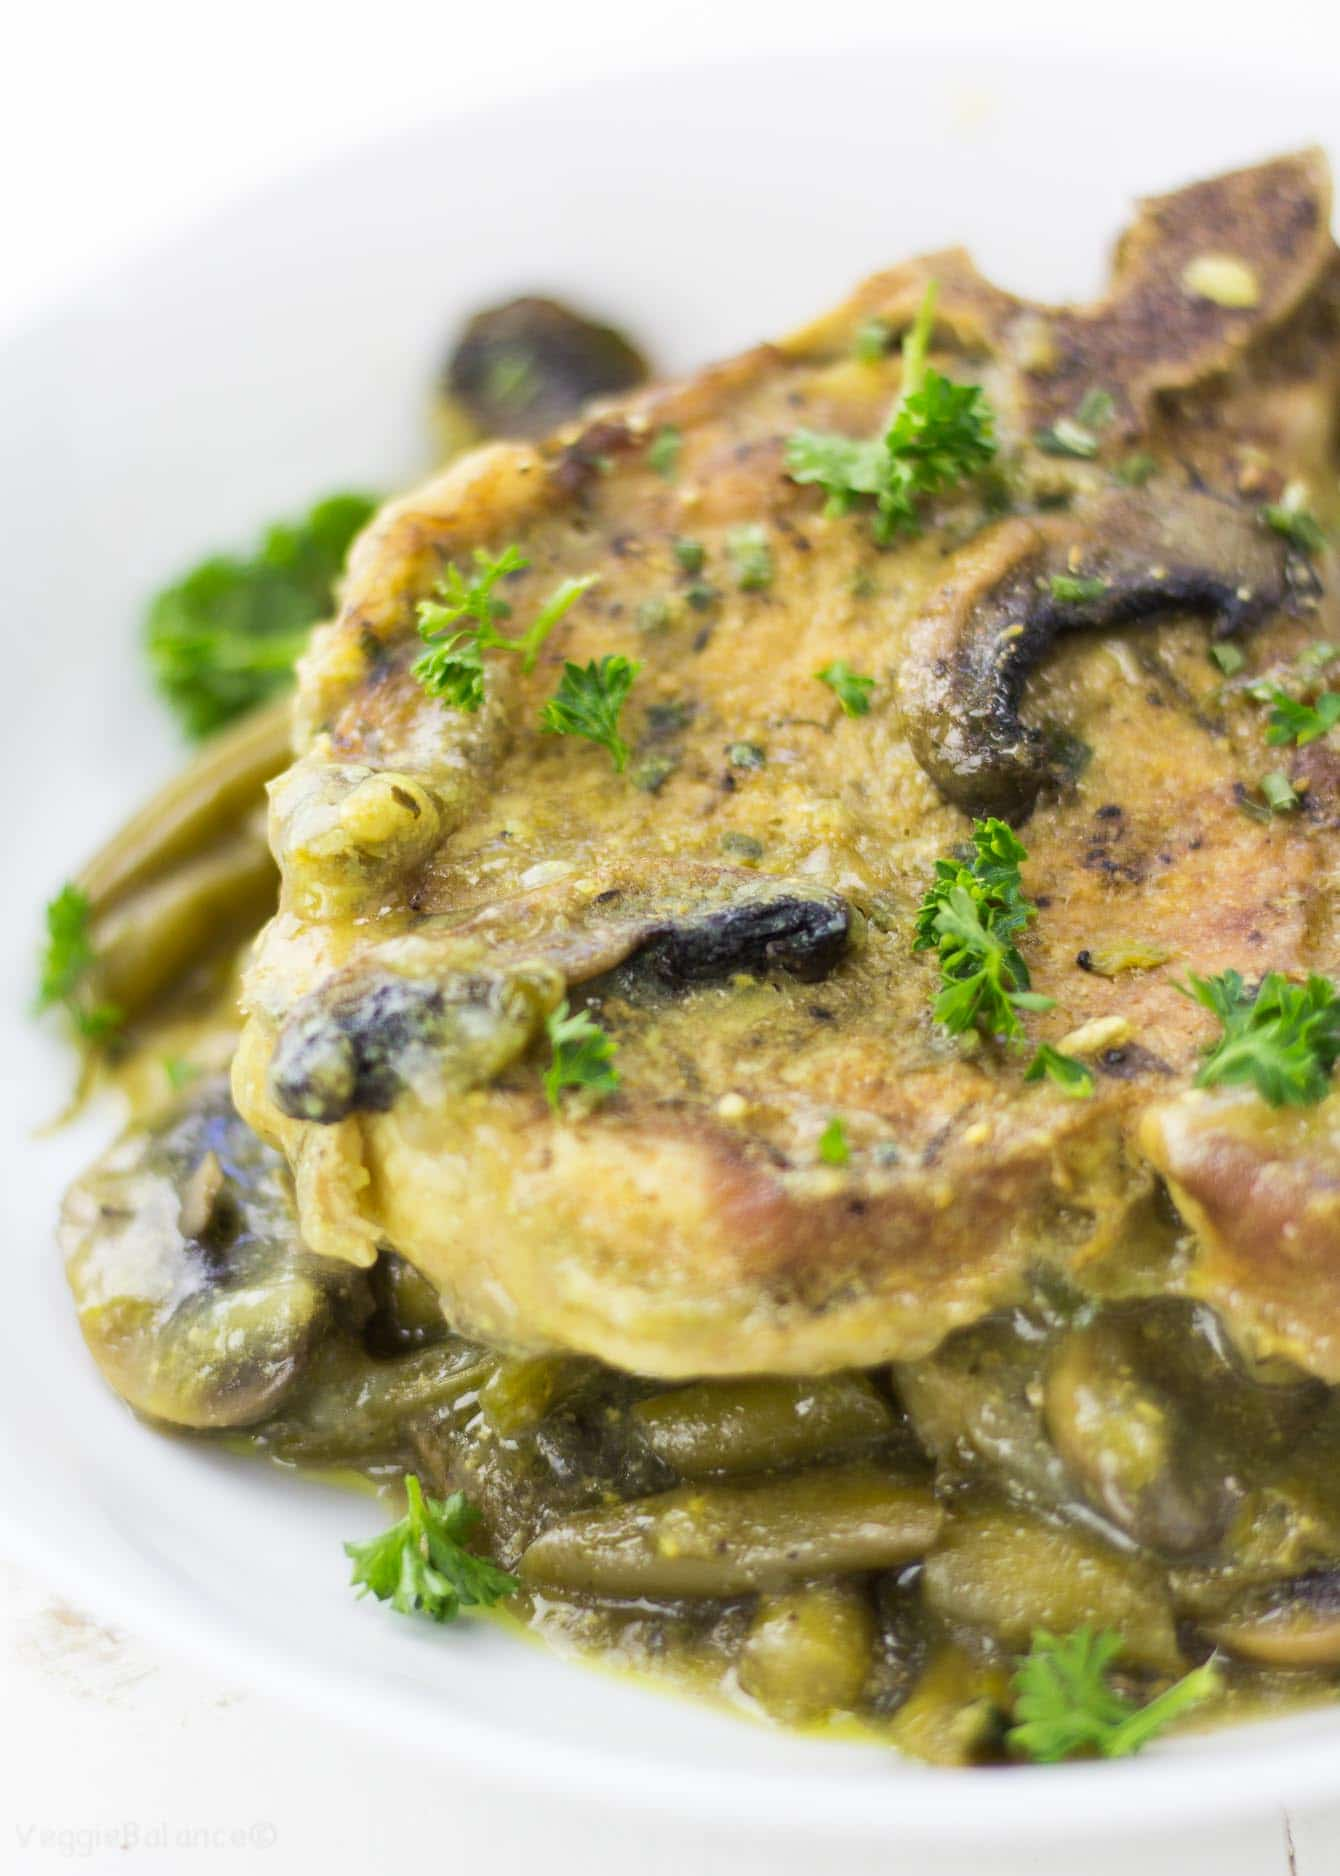 Pressure Cooker Pork Chops cooked in a honey mustard sauce. Enjoy the simplicity of 10 minutes of actual work and 30 minutes of hands-free cooking as the pressure cooker sizzles them to perfection.